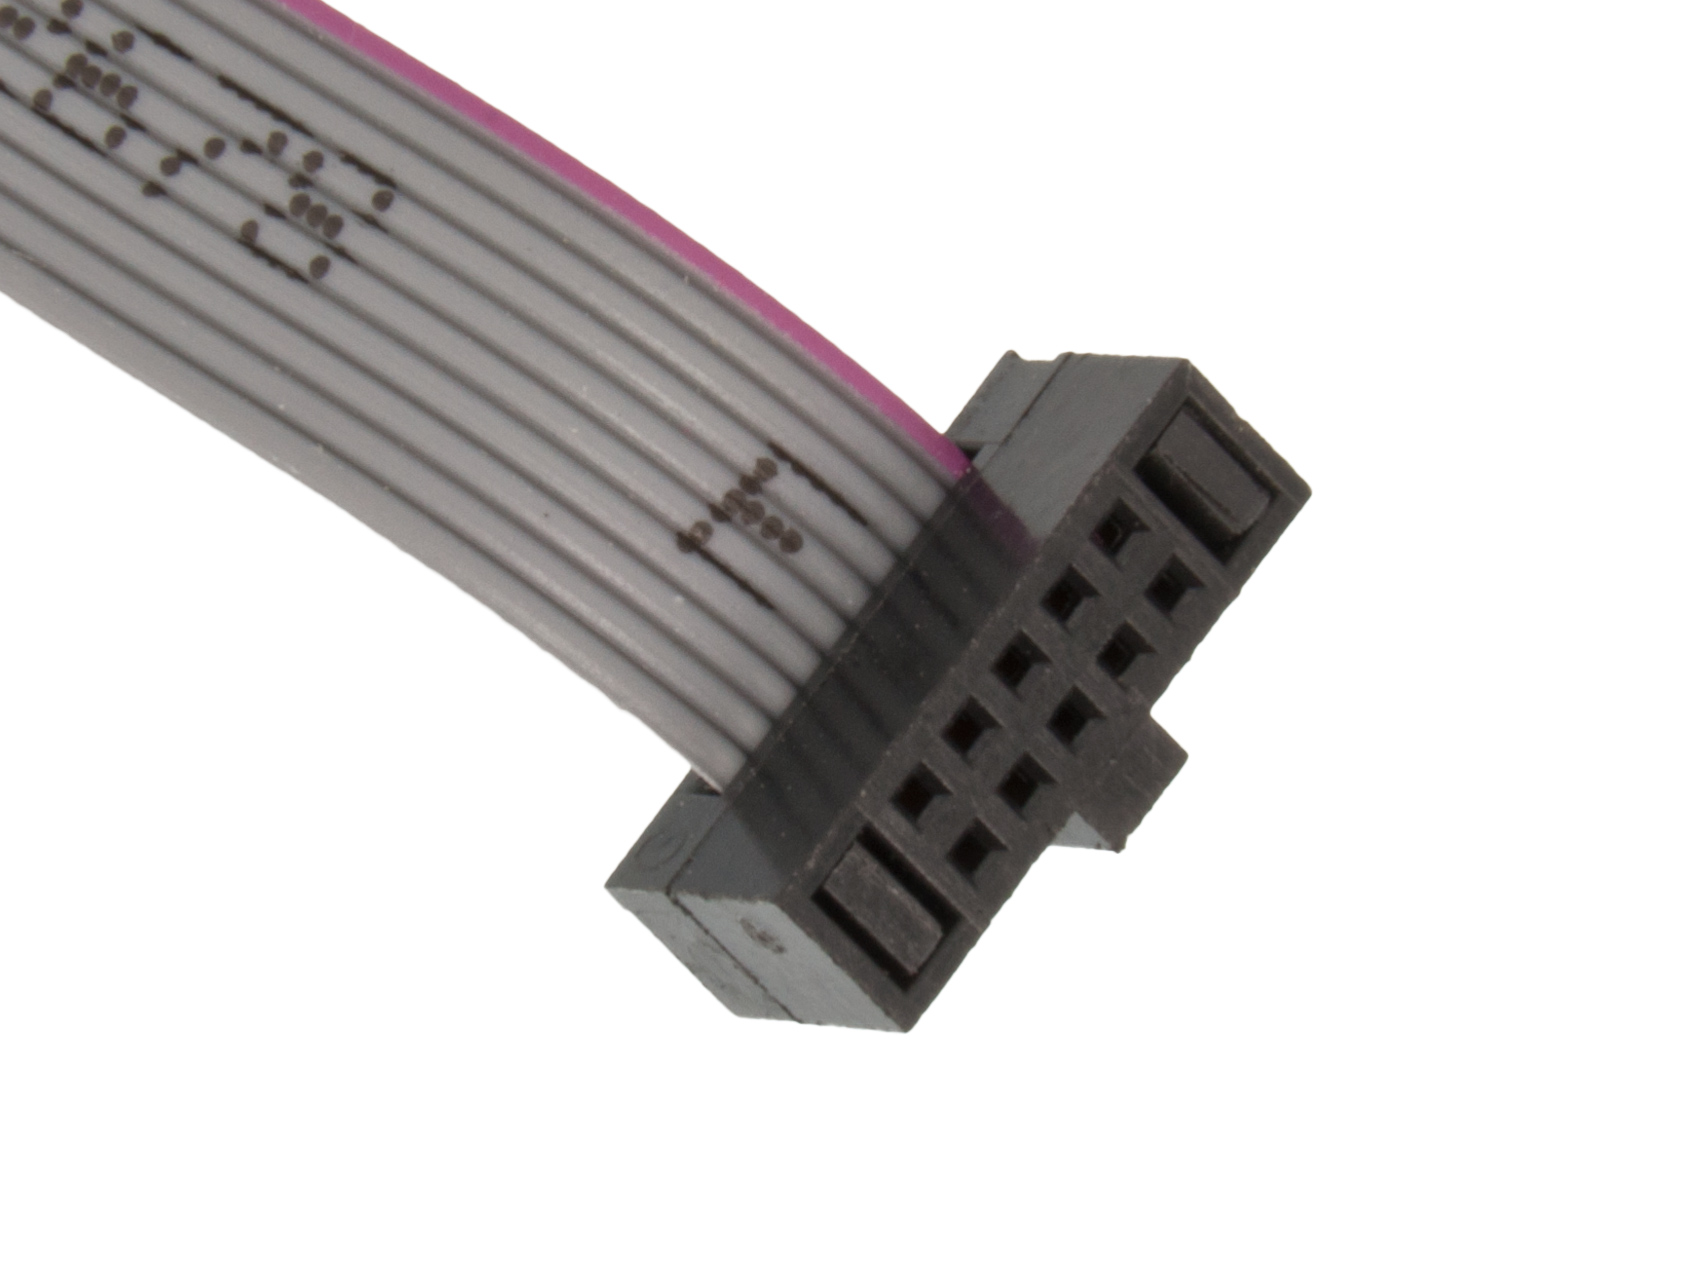 Programming cable SWD 10-p 1 27mm 15cm